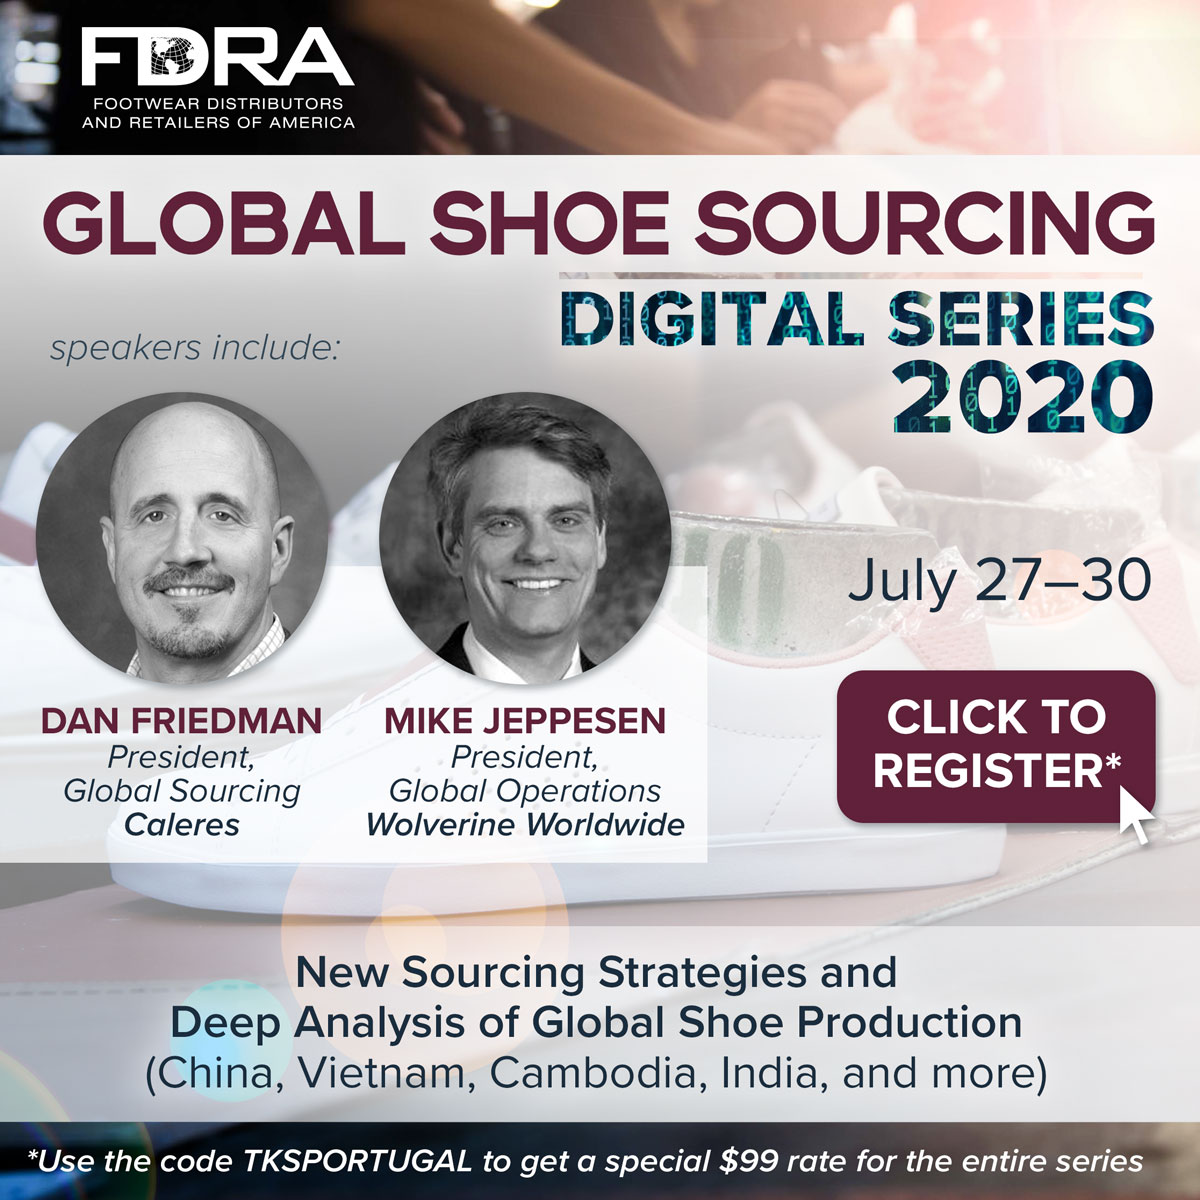 FDRA's Global Shoe Sourcing Digital Series